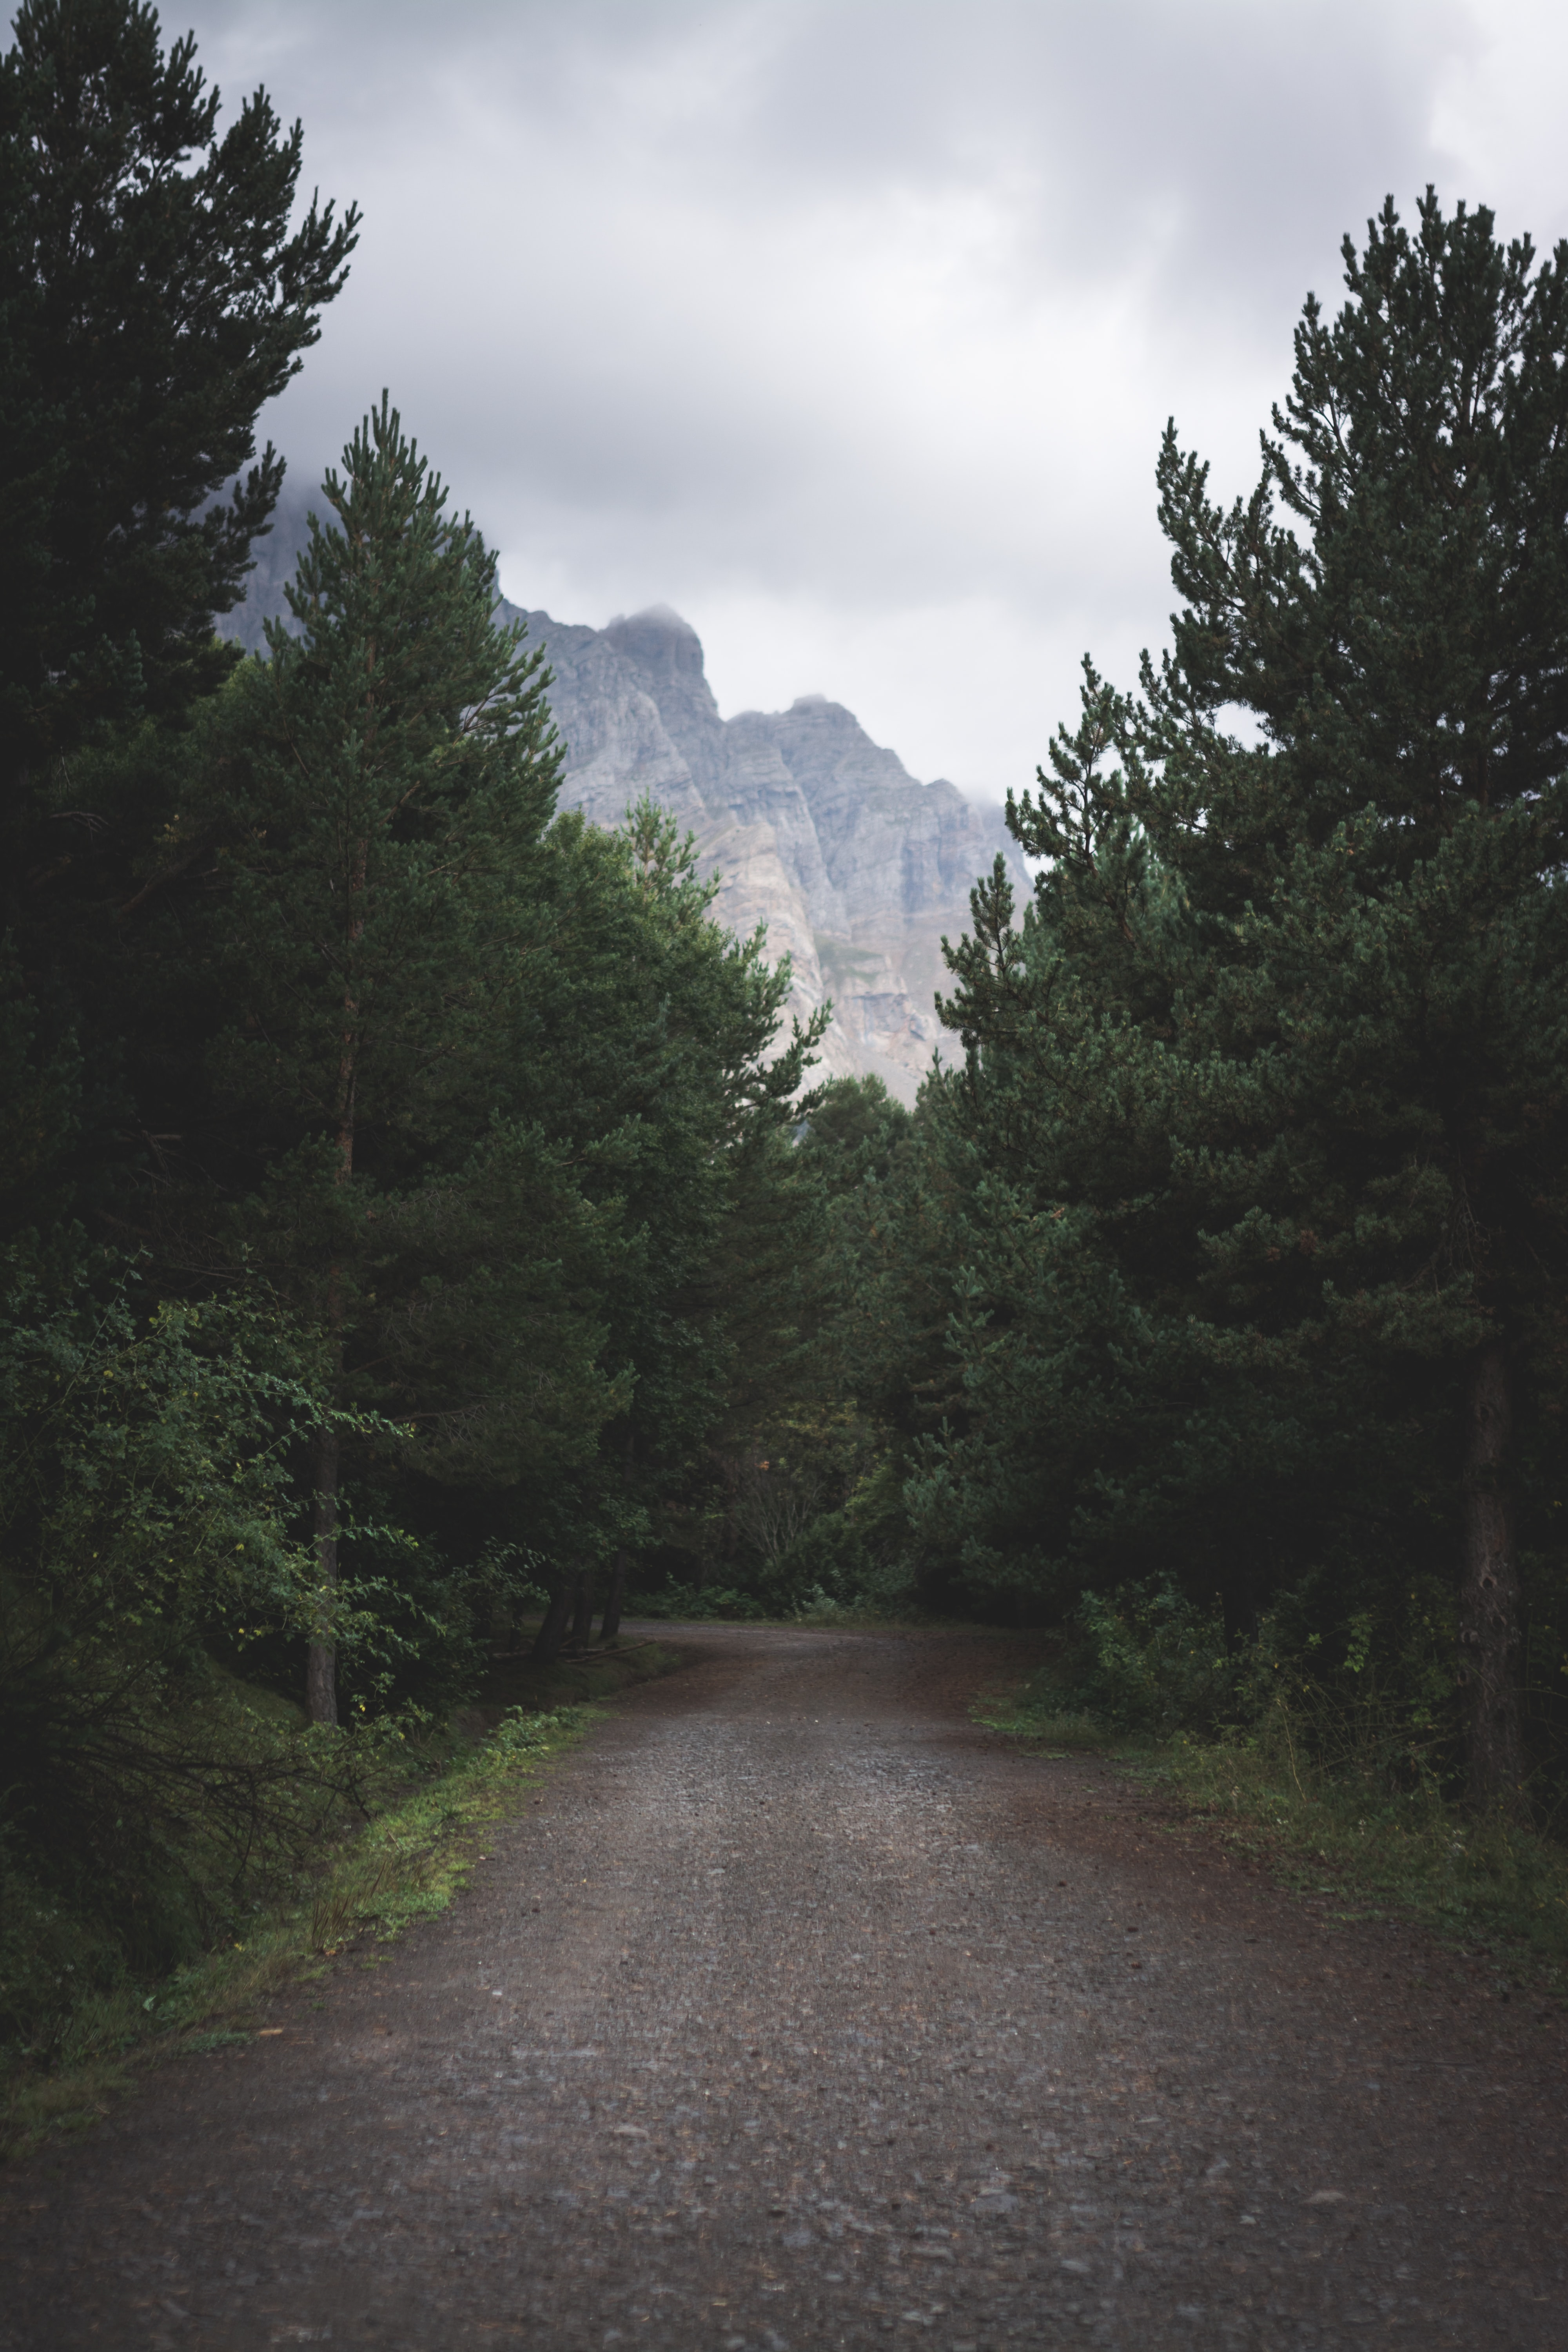 Forest Road Pictures Download Free Images On Unsplash